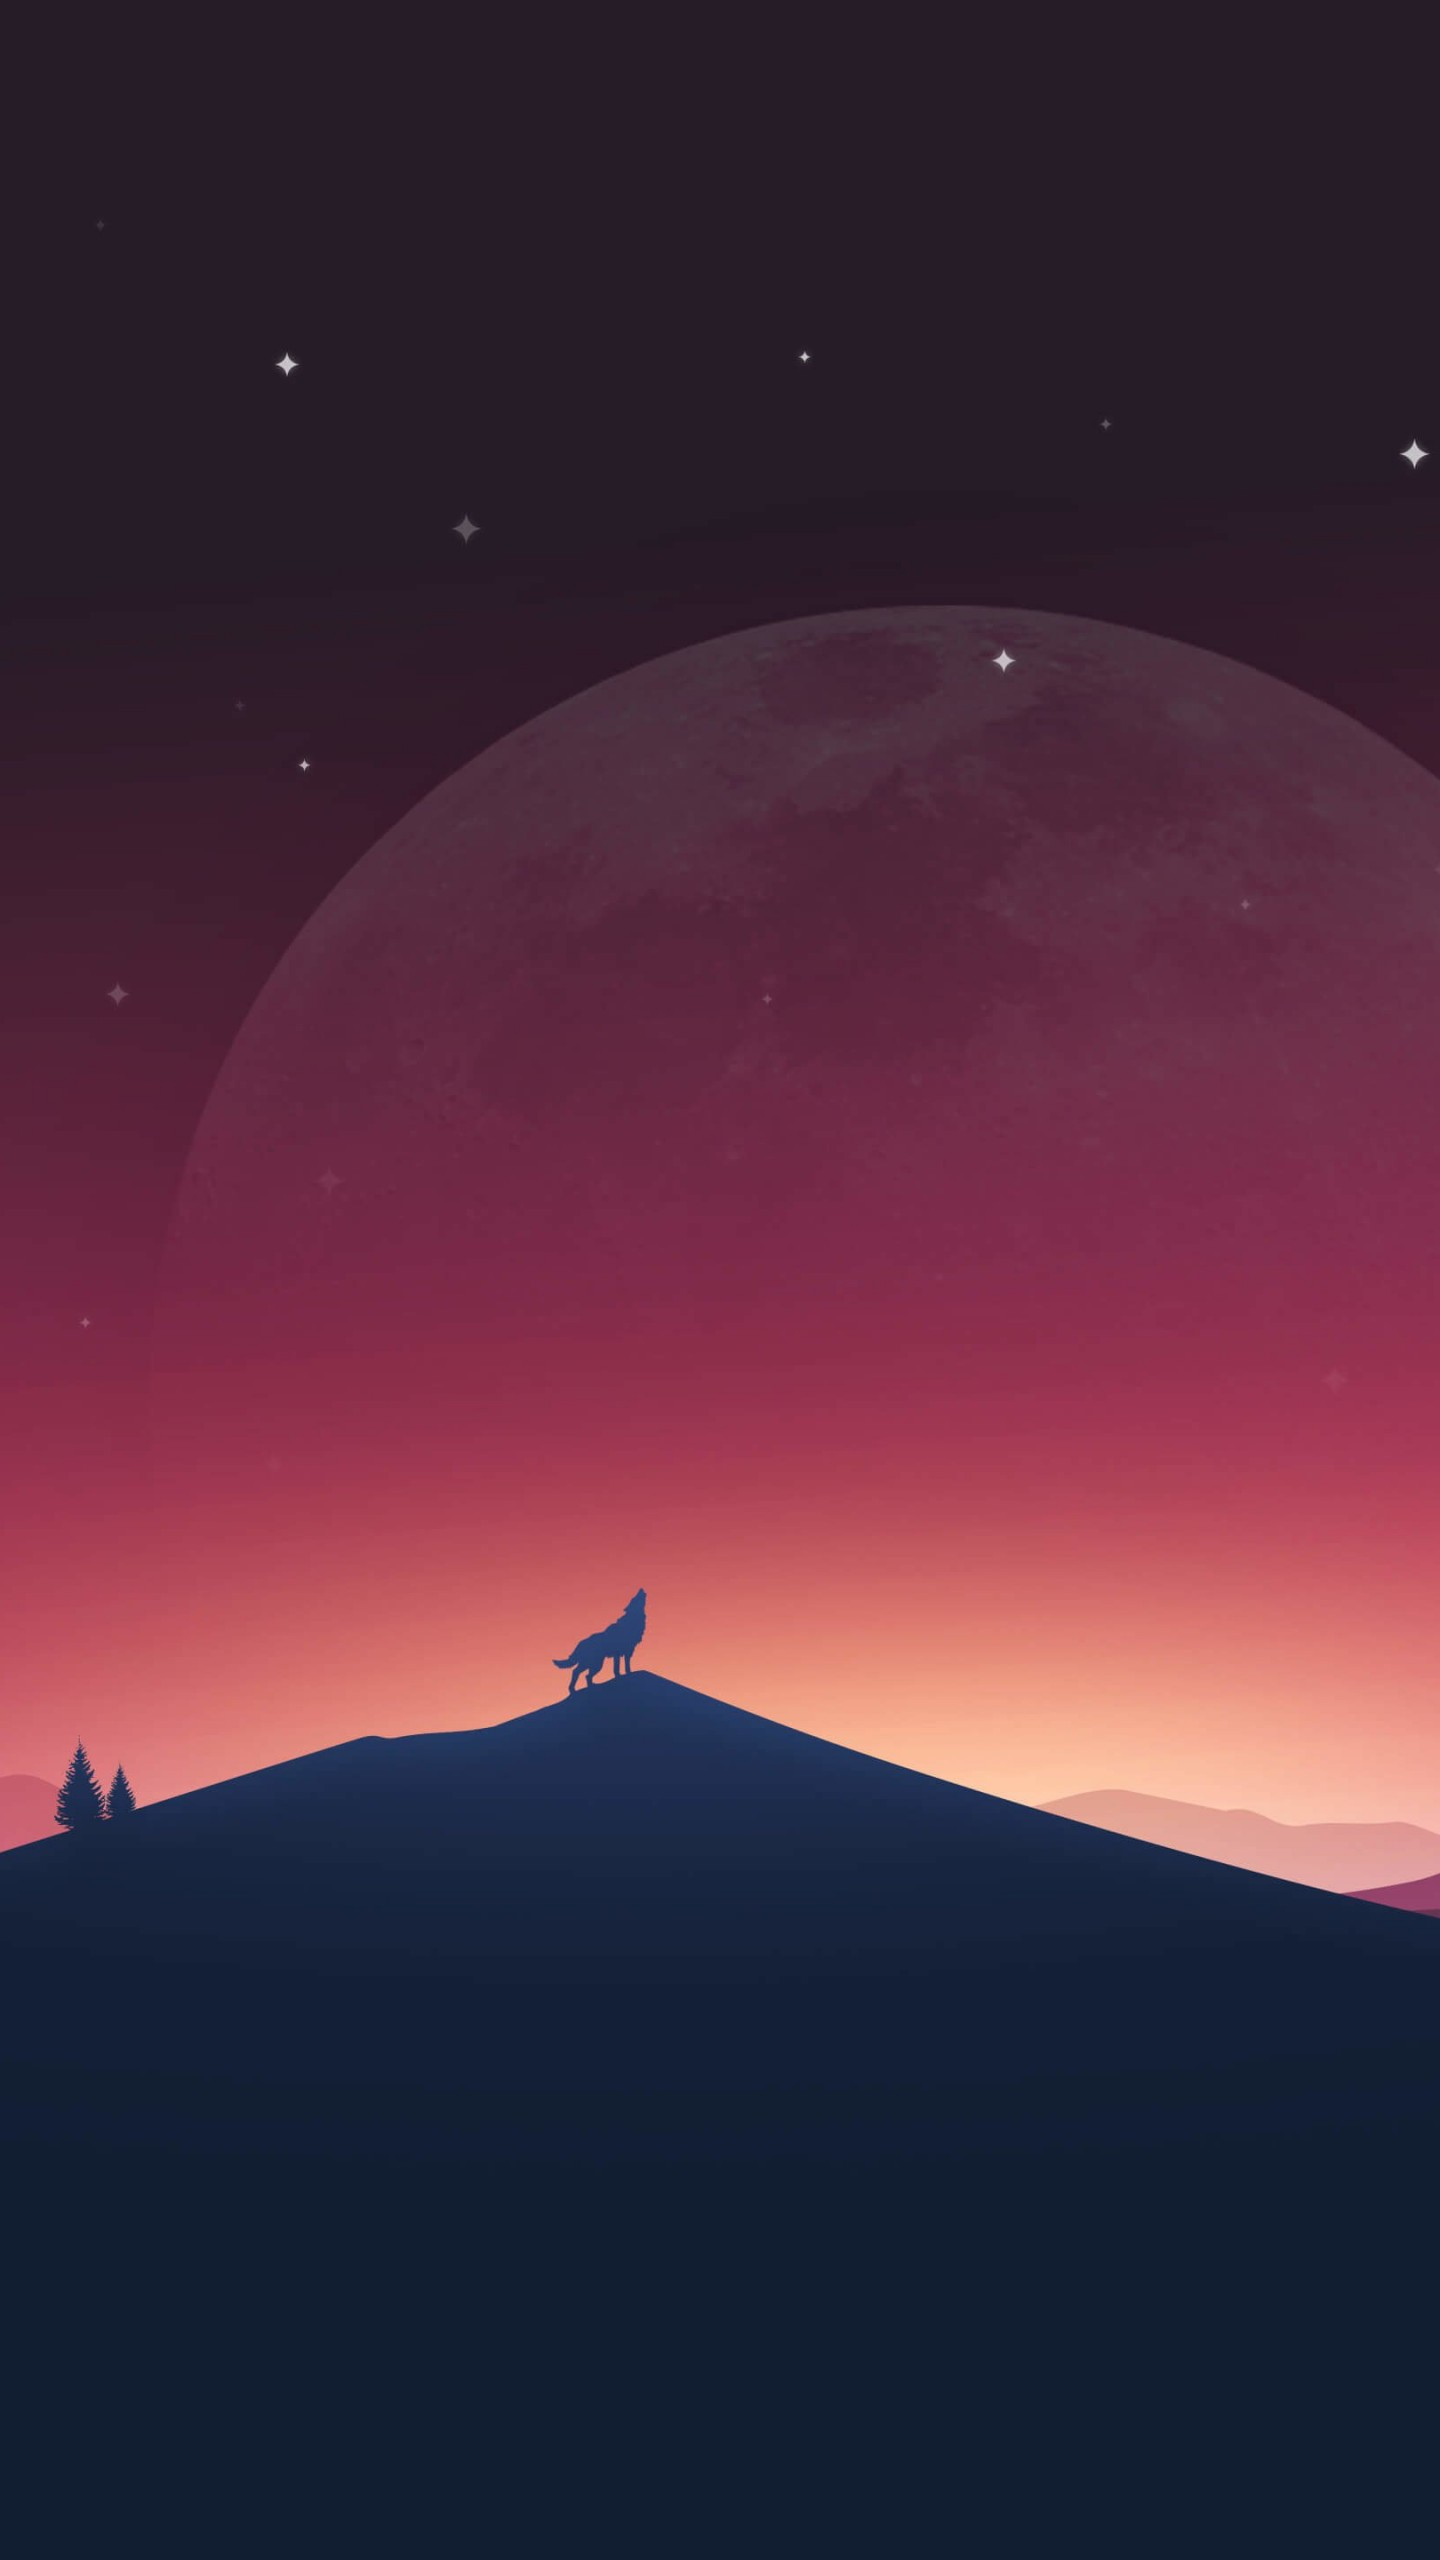 Wolf Howling At The Moon Wallpaper for SAMSUNG Galaxy S6